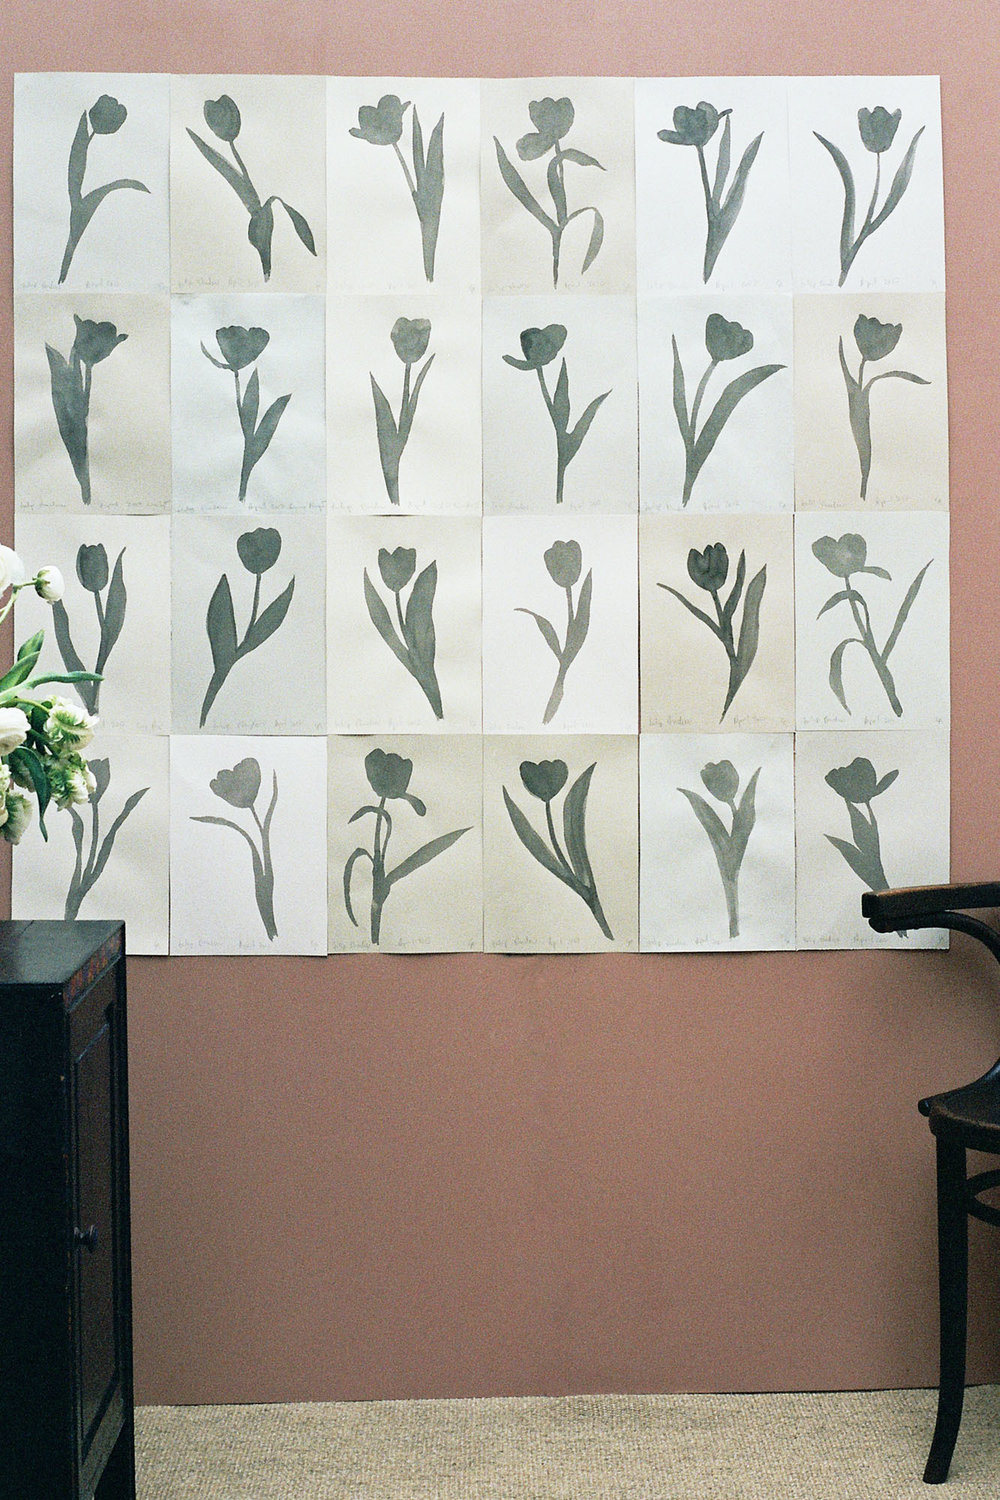 24 Shadow Tulips  2017  Sumi Ink on Paper  As a Panel: 116cm x 126cm Individual 21cm x 29cm